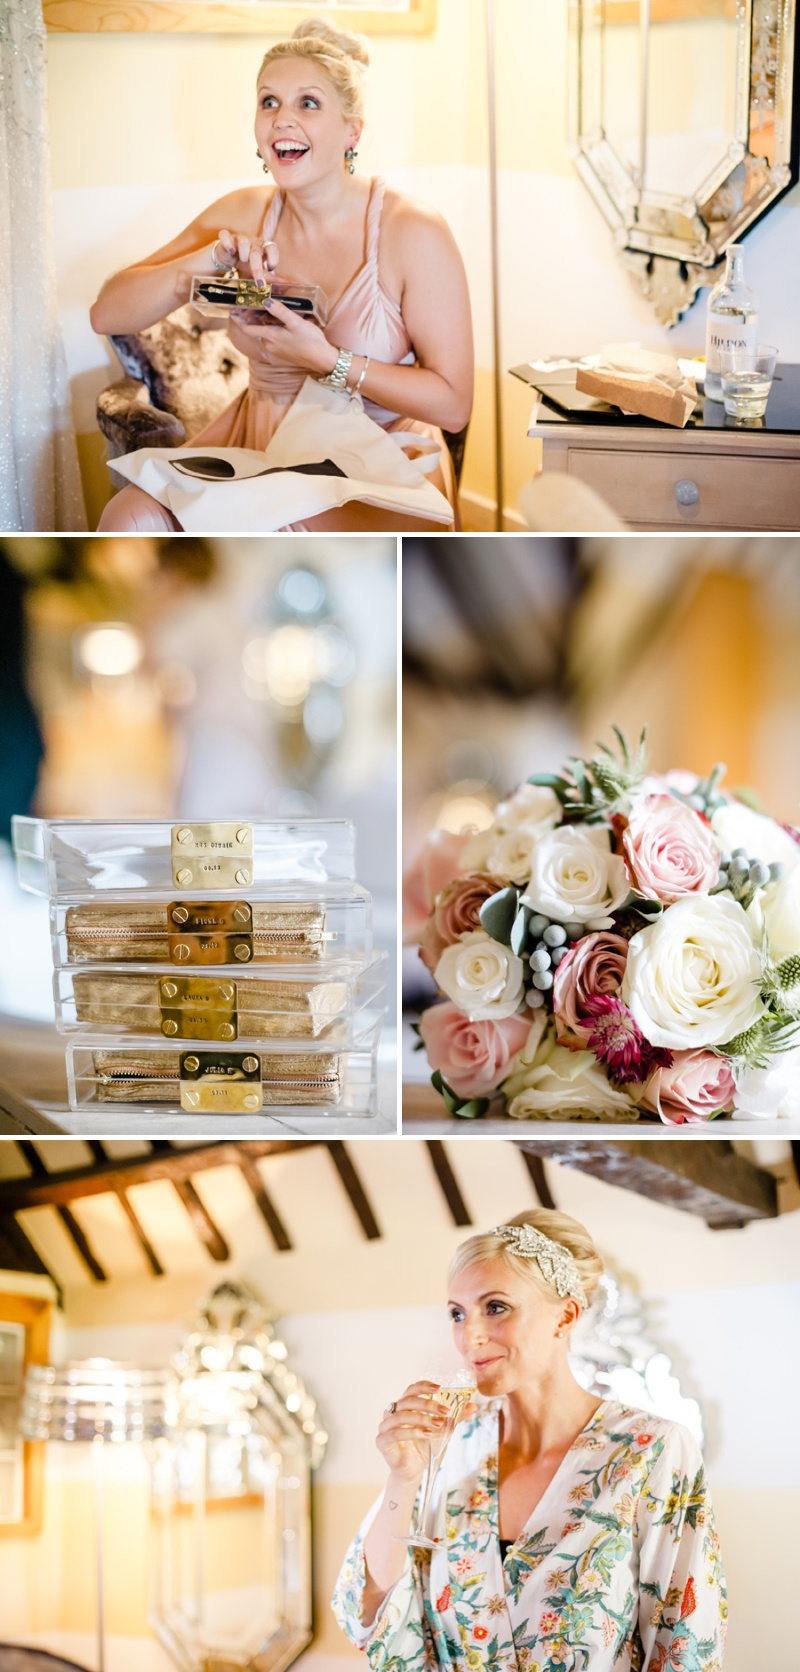 A Beautiful Music Inspired Wedding At The Crazy Bear In Stadhampton With A Jenny Packham Esme Wedding Dress and A Pink And Cream Avalanche Rose Bouquet. 0002 If Music Be The Food Of Love.